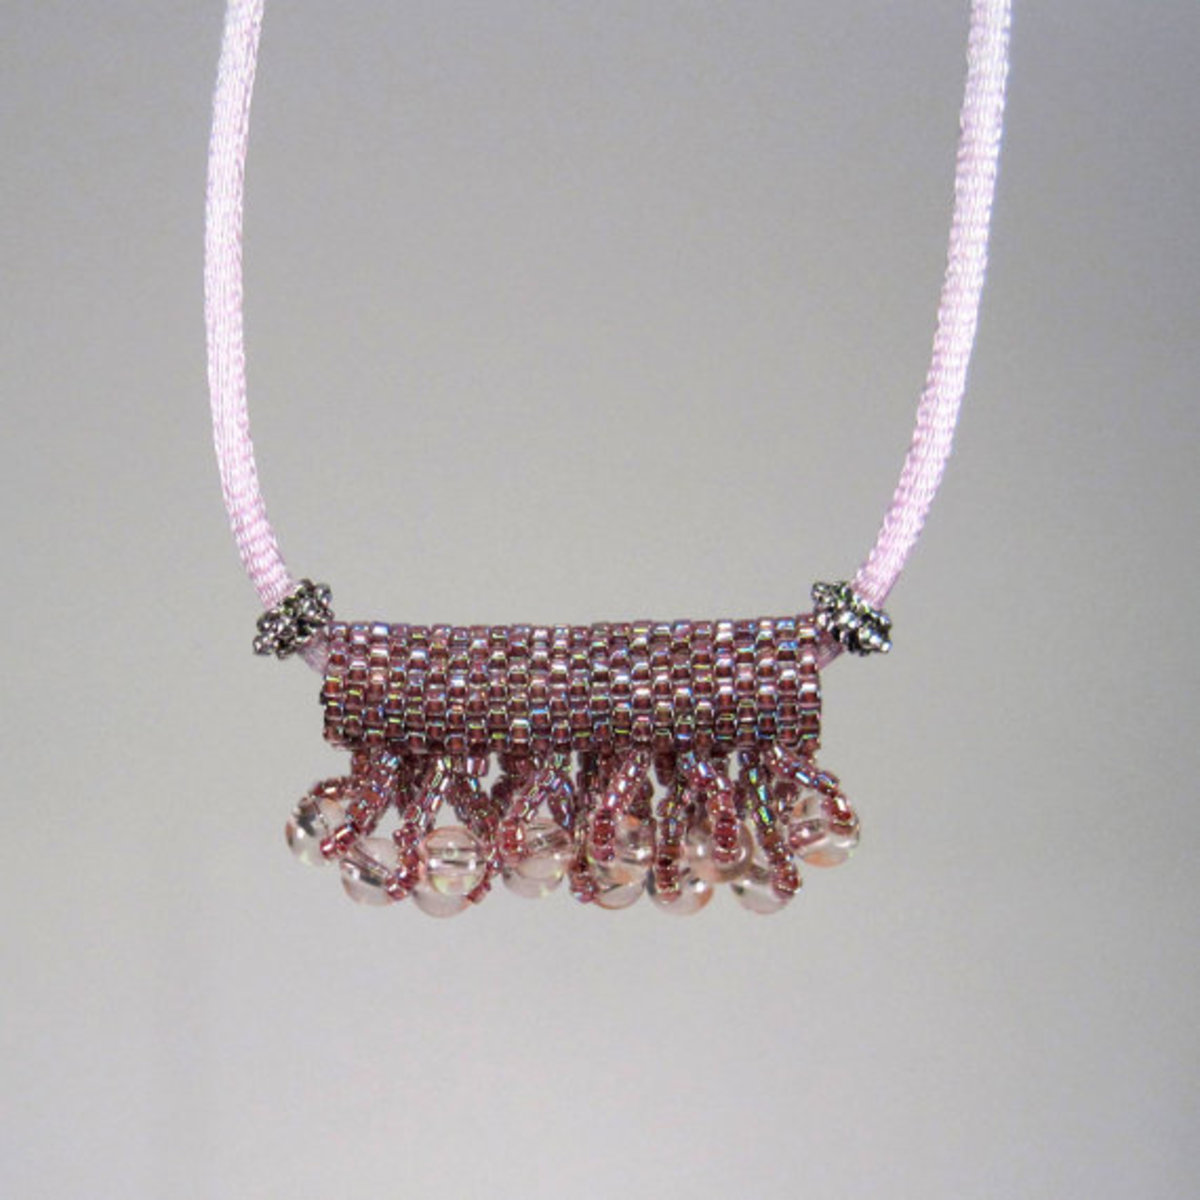 Purple Slide Necklace Peyote Tube: A beaded bead, with or without embellishment, can make a gorgeous focal for a necklace or bracelet.